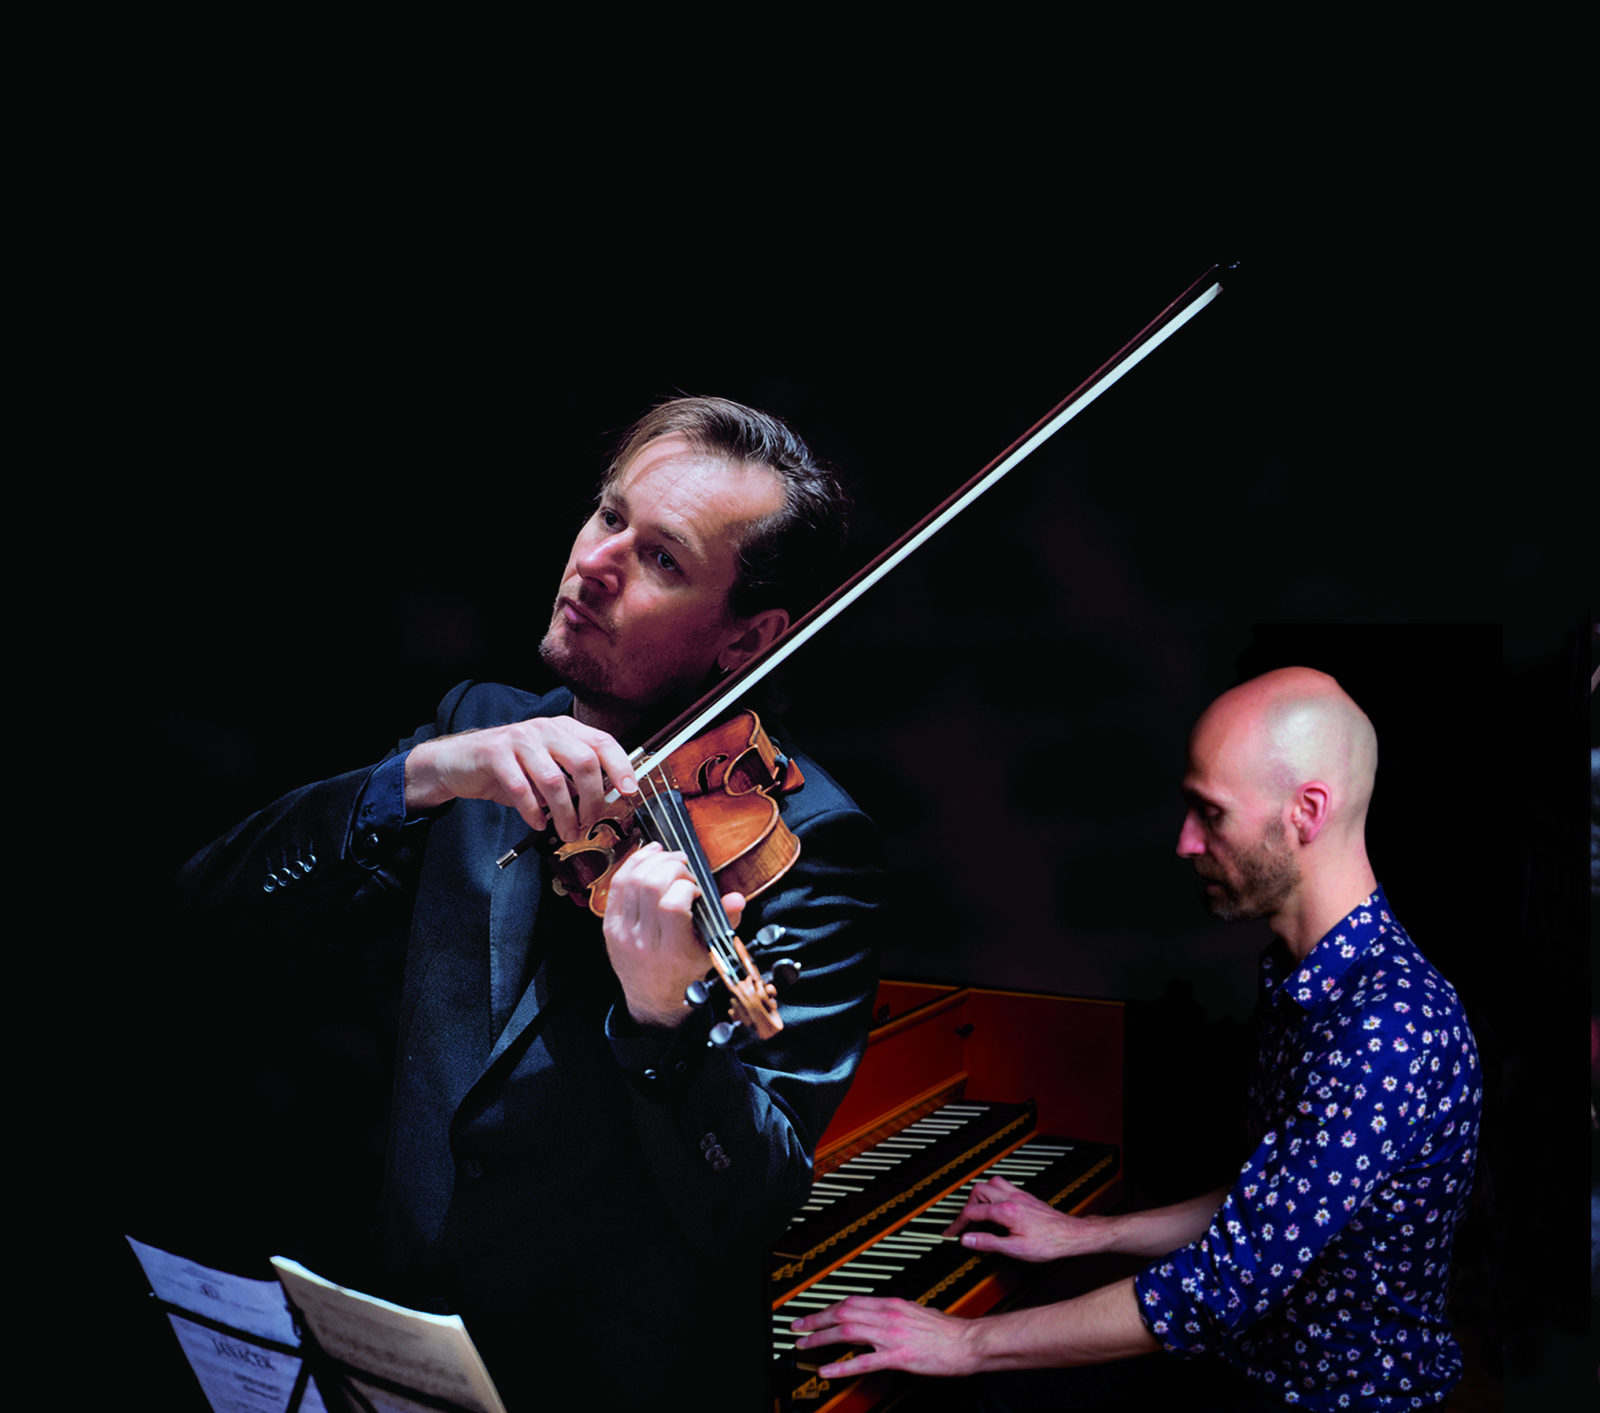 Tognetti and Helyard playing their instruments